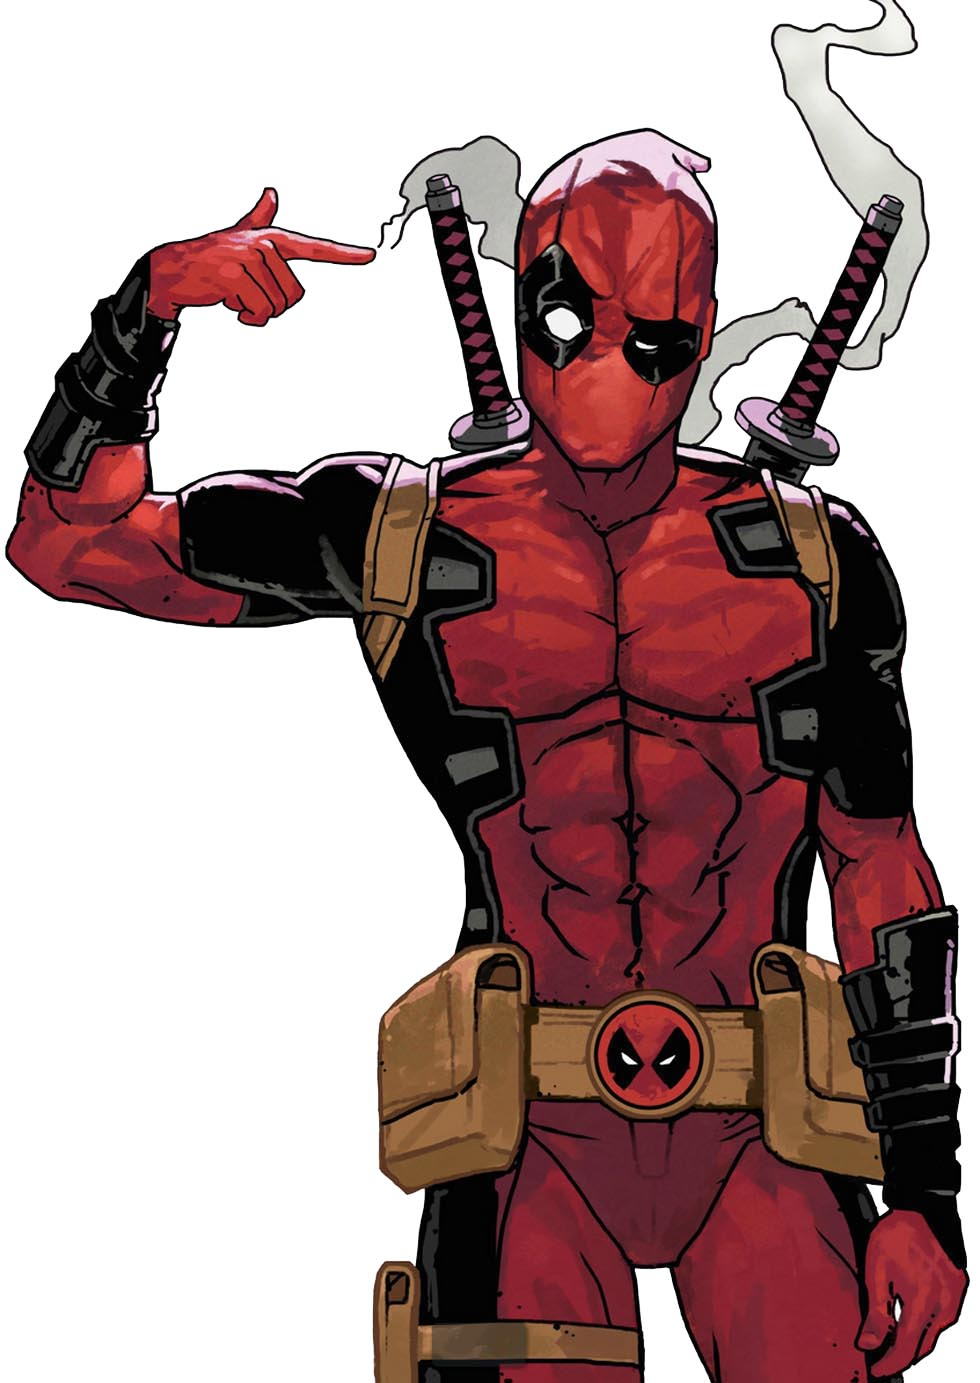 """The """"Deadpool"""" live action film adaptation hit theatres on Feb. 12, 2016. Photo courtesy/ archonia.com"""